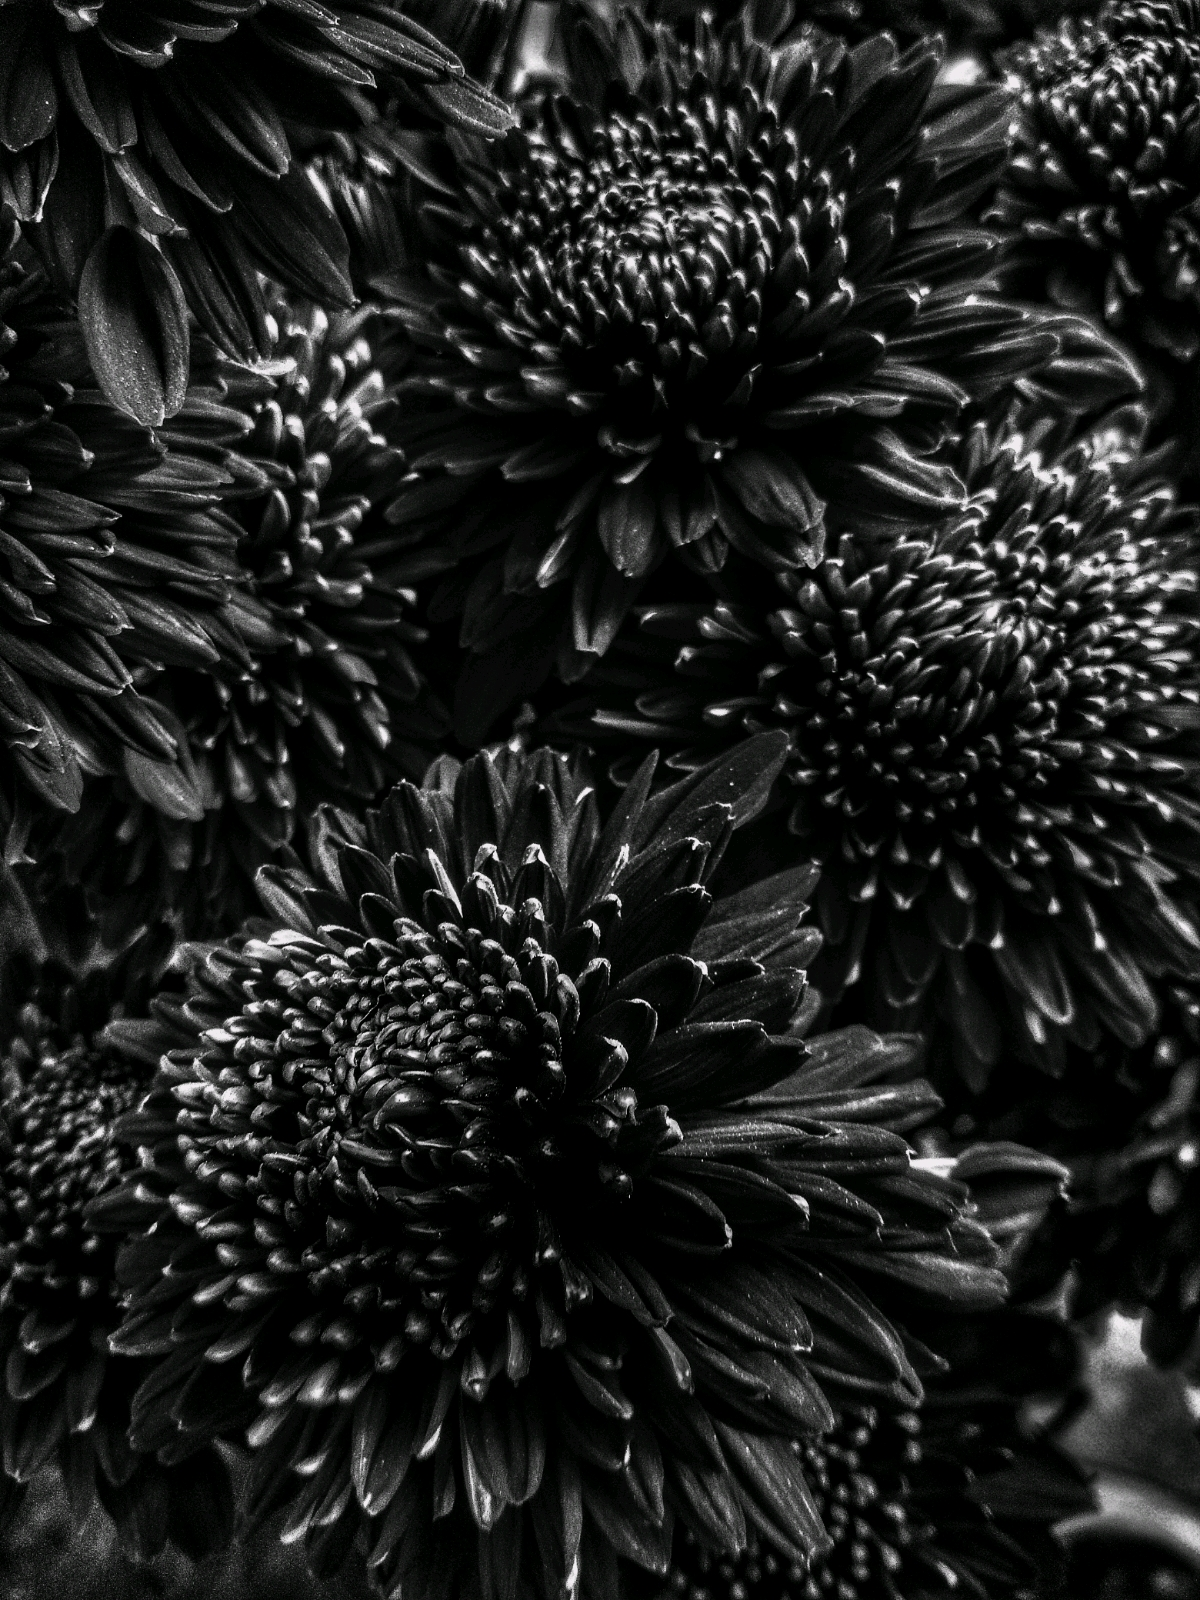 The petals of the chrysanthemums always show the best of patterns in nature.